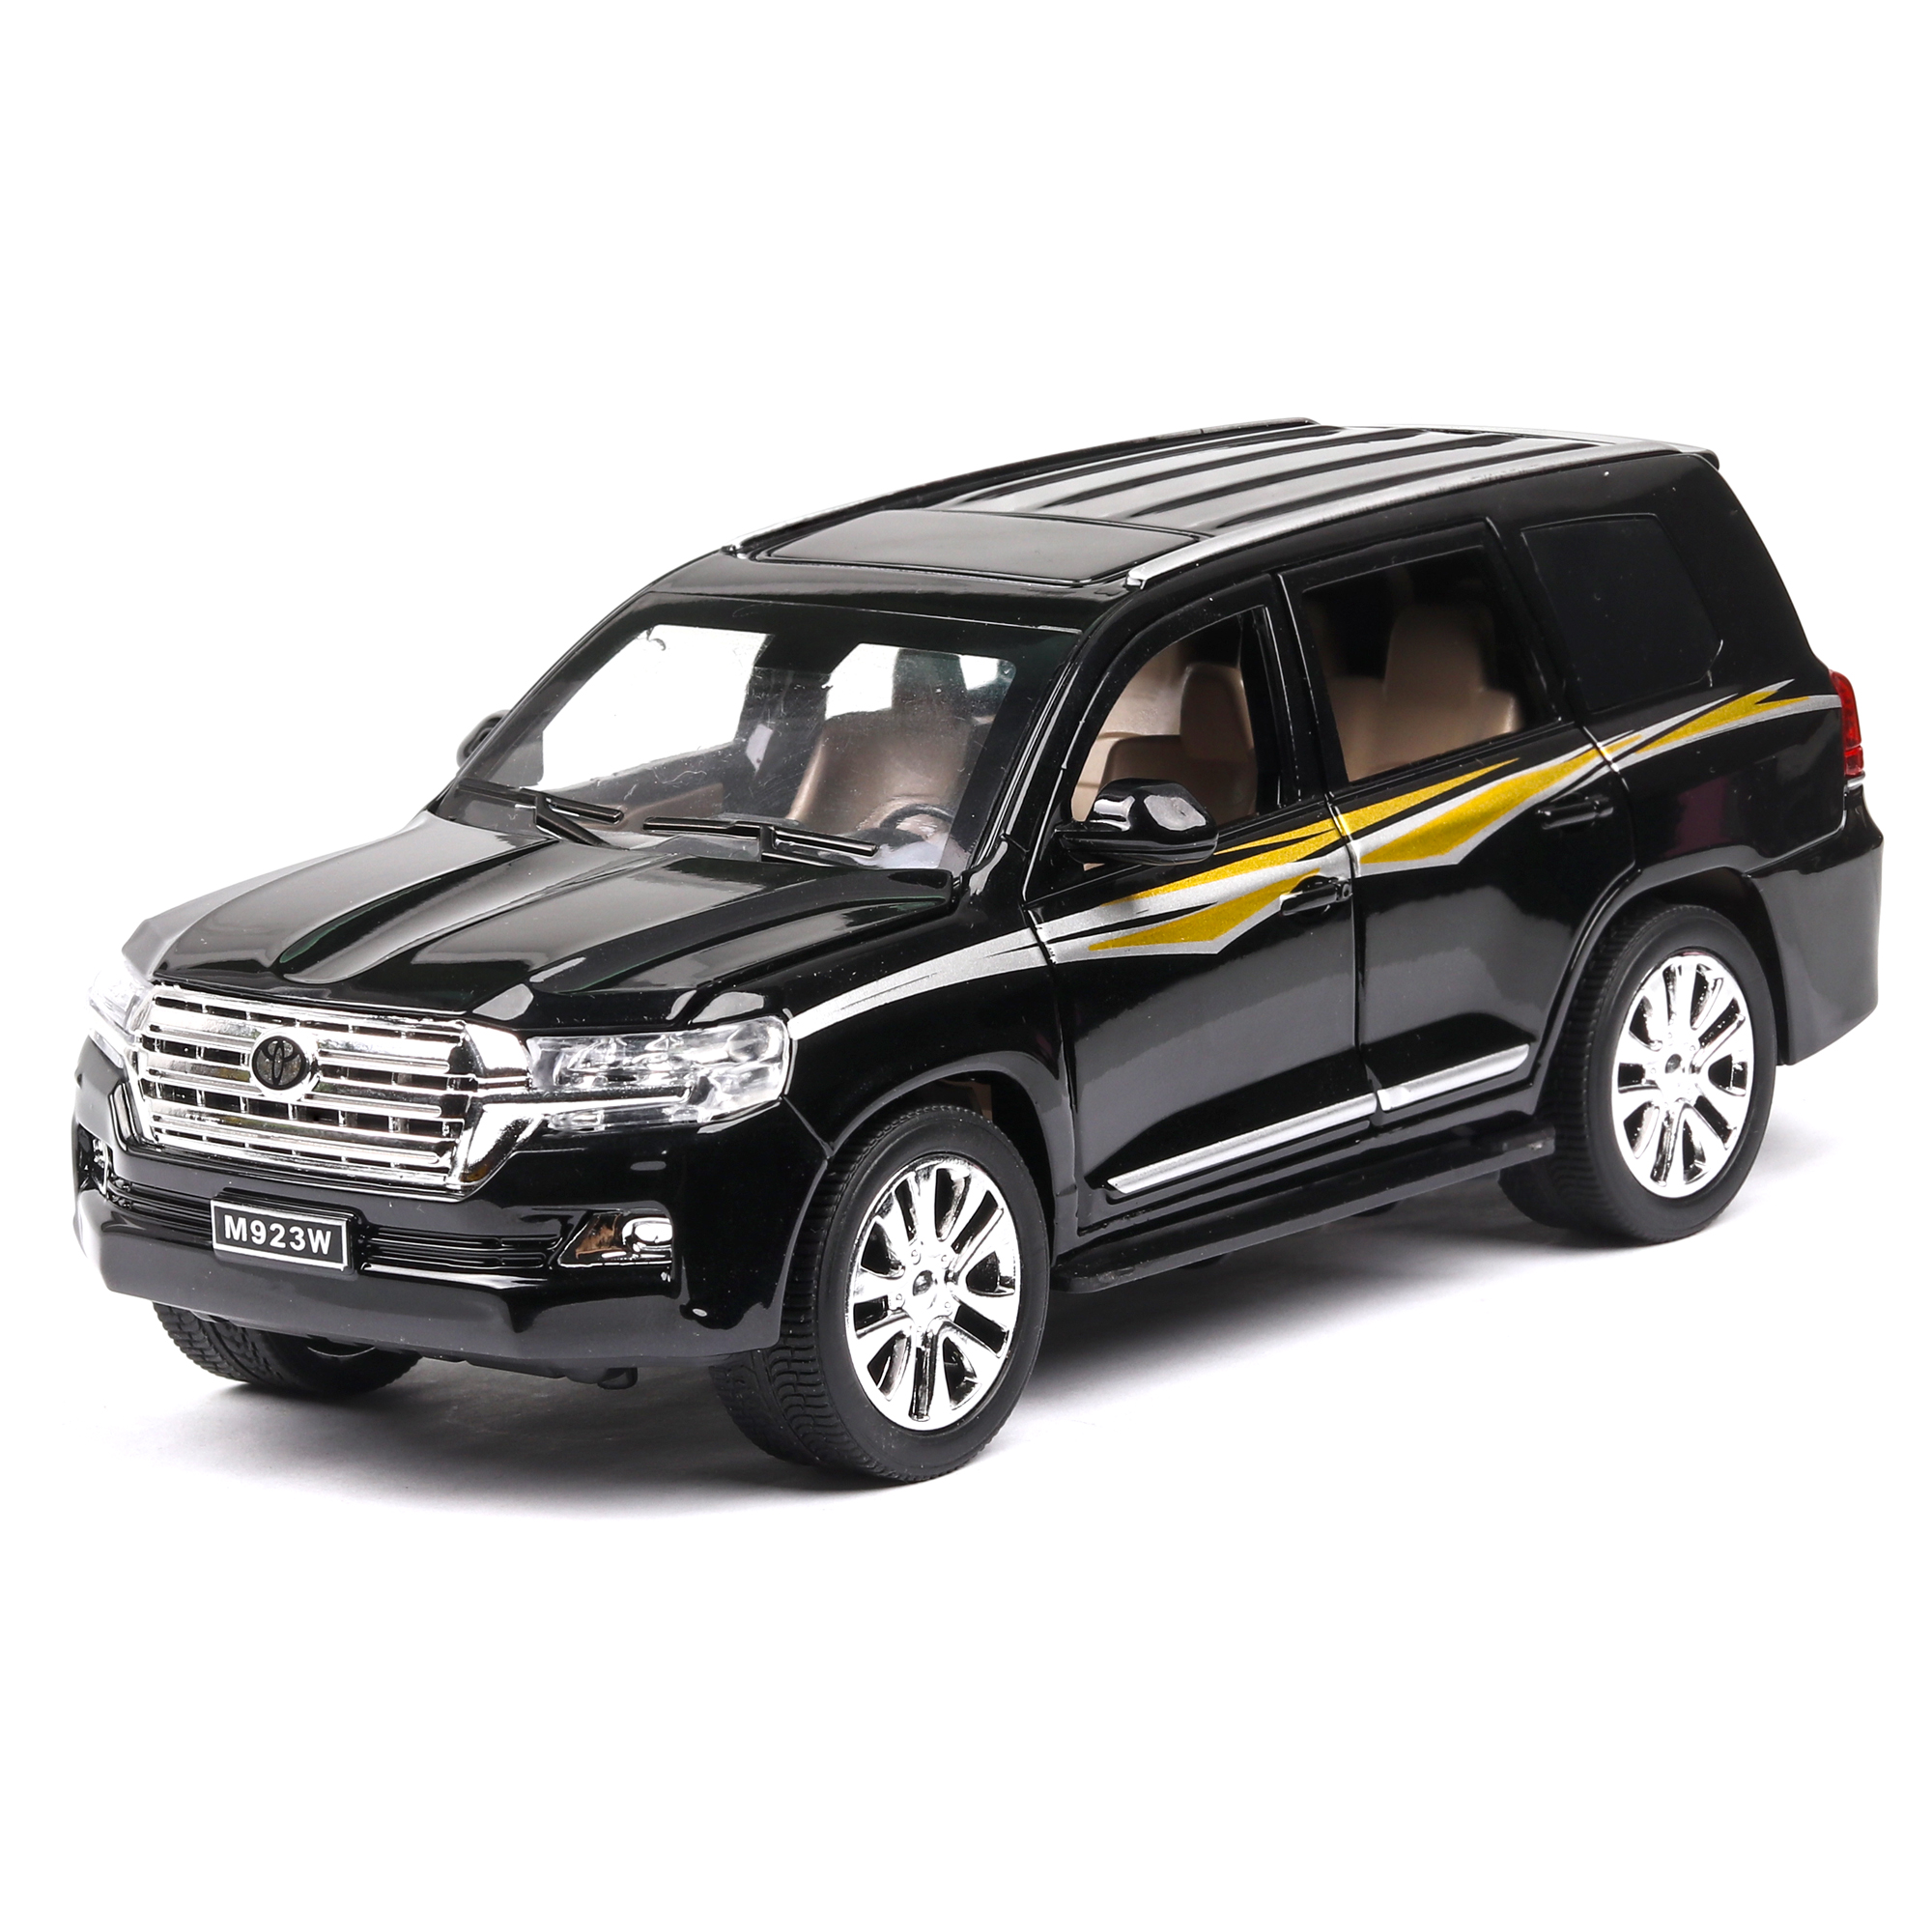 1/24 1/32 New Style Toy Car TOYOTA LAND CRUISER Prado Metal Toy Alloy Car Diecasts & Toy Vehicles Car Model Toys For Children